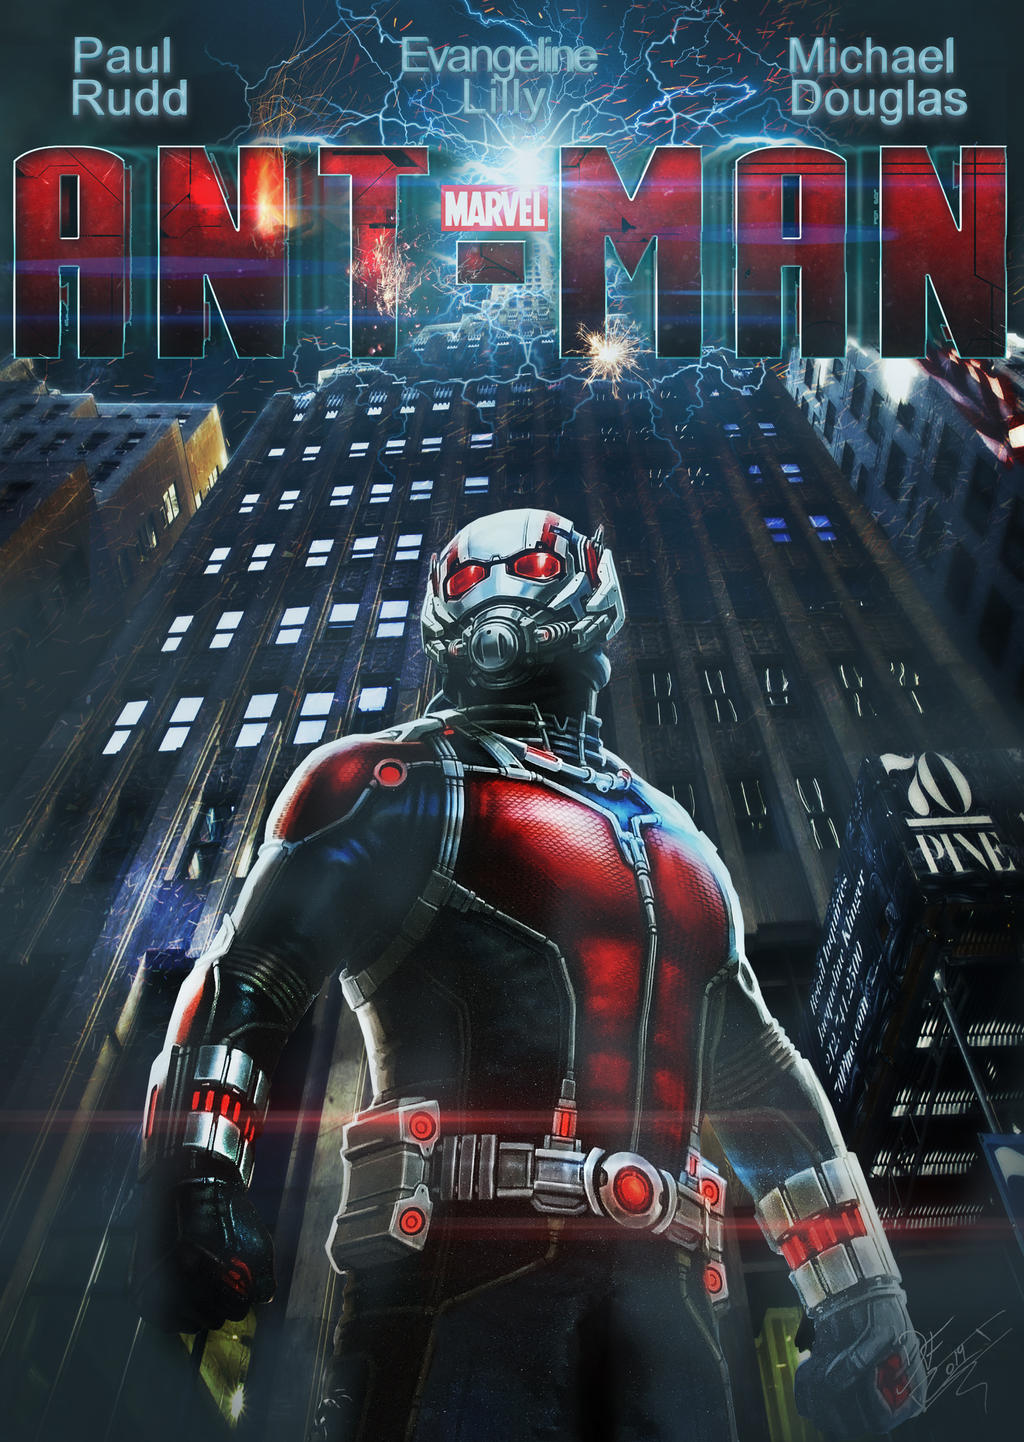 antman 2015 poster 3 by cinefilomania on deviantart